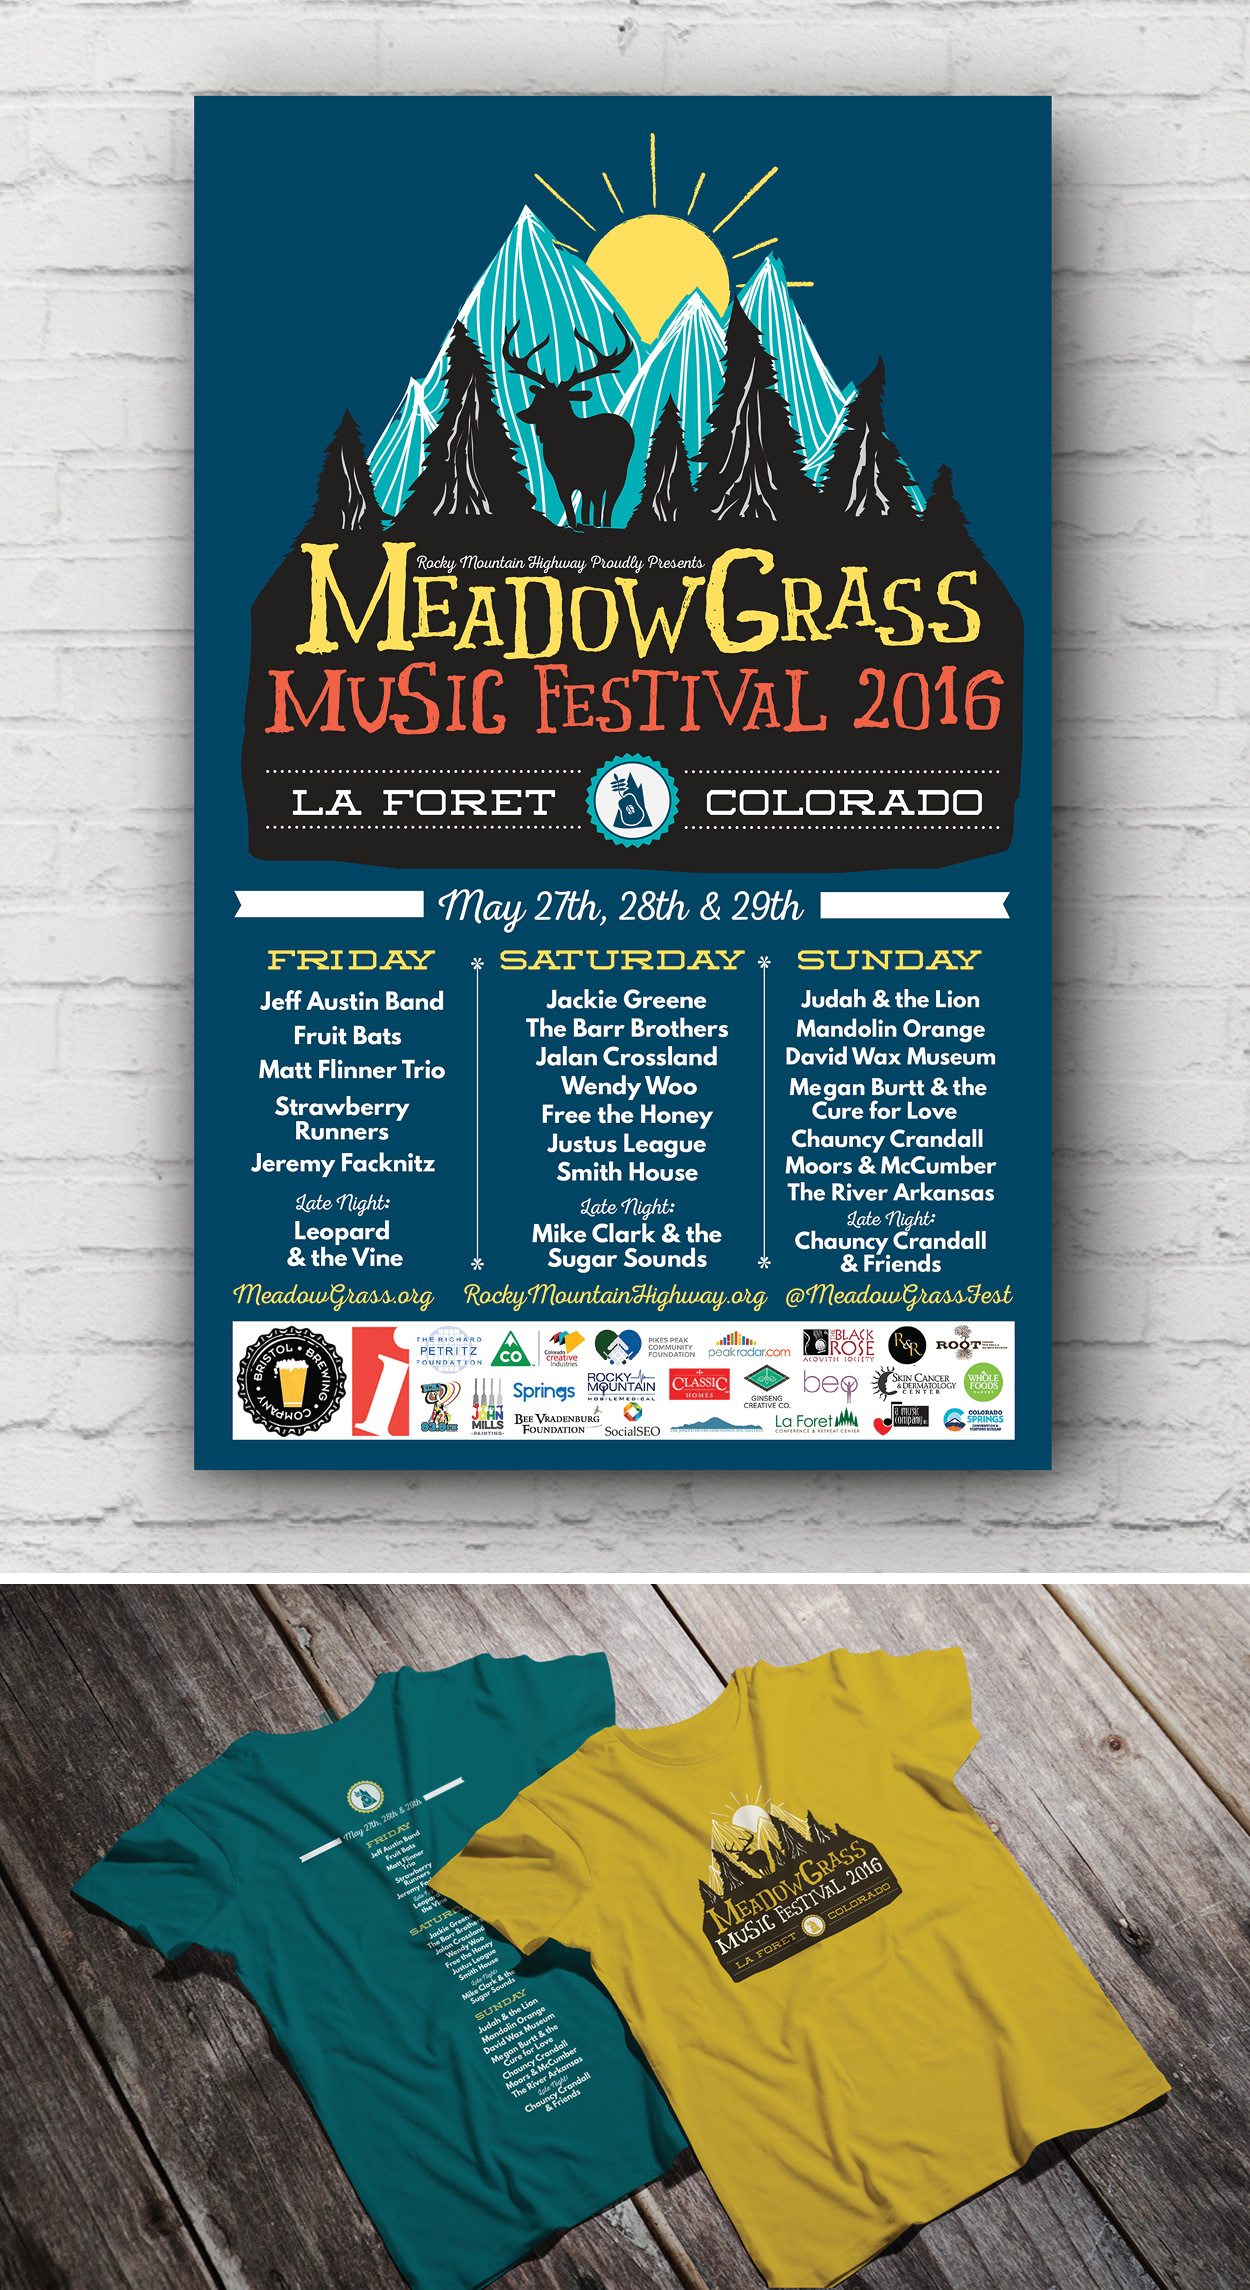 MEADOWGRASS MUSIC FESTIVAL 2016